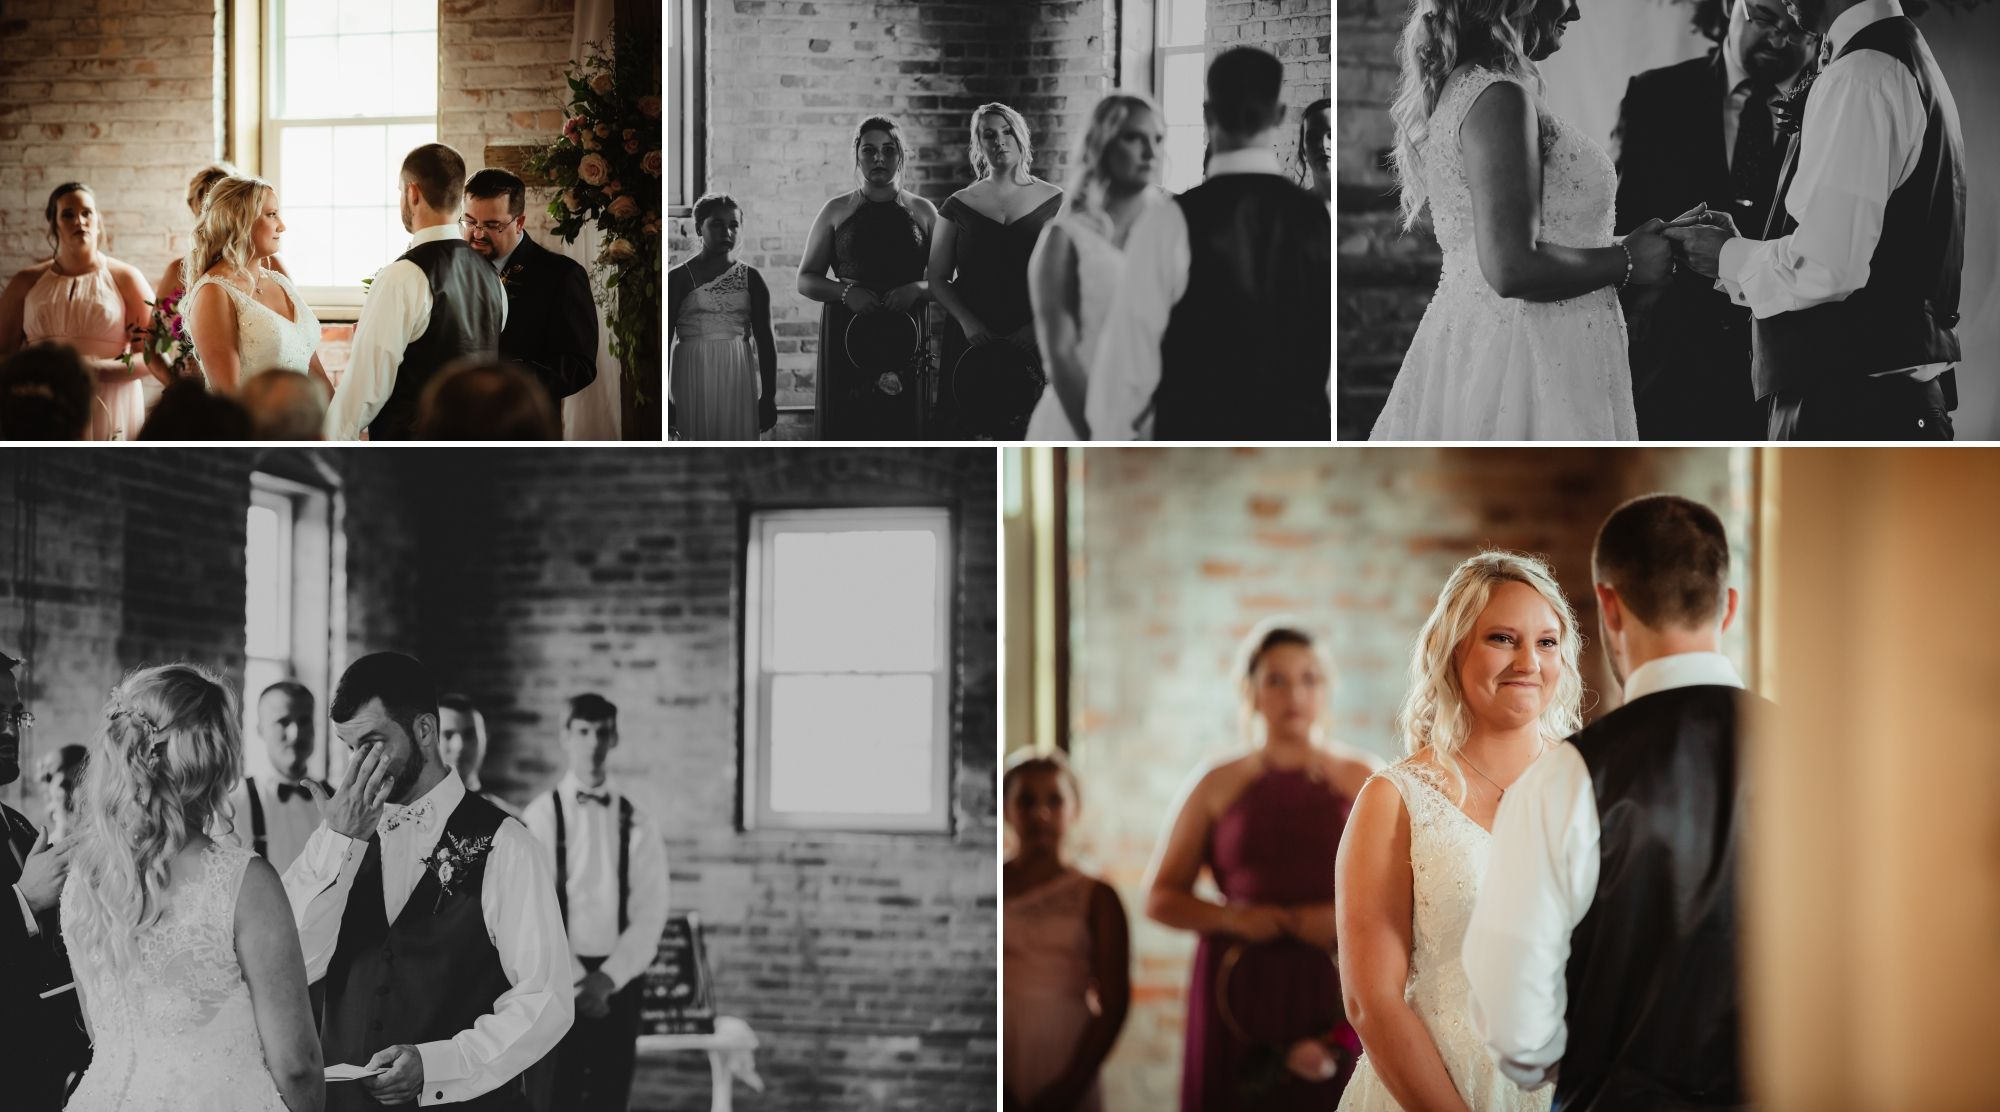 Collage of the wedding ceremony with bride and groom facing each other. They read vows, exchange rings, and cry.